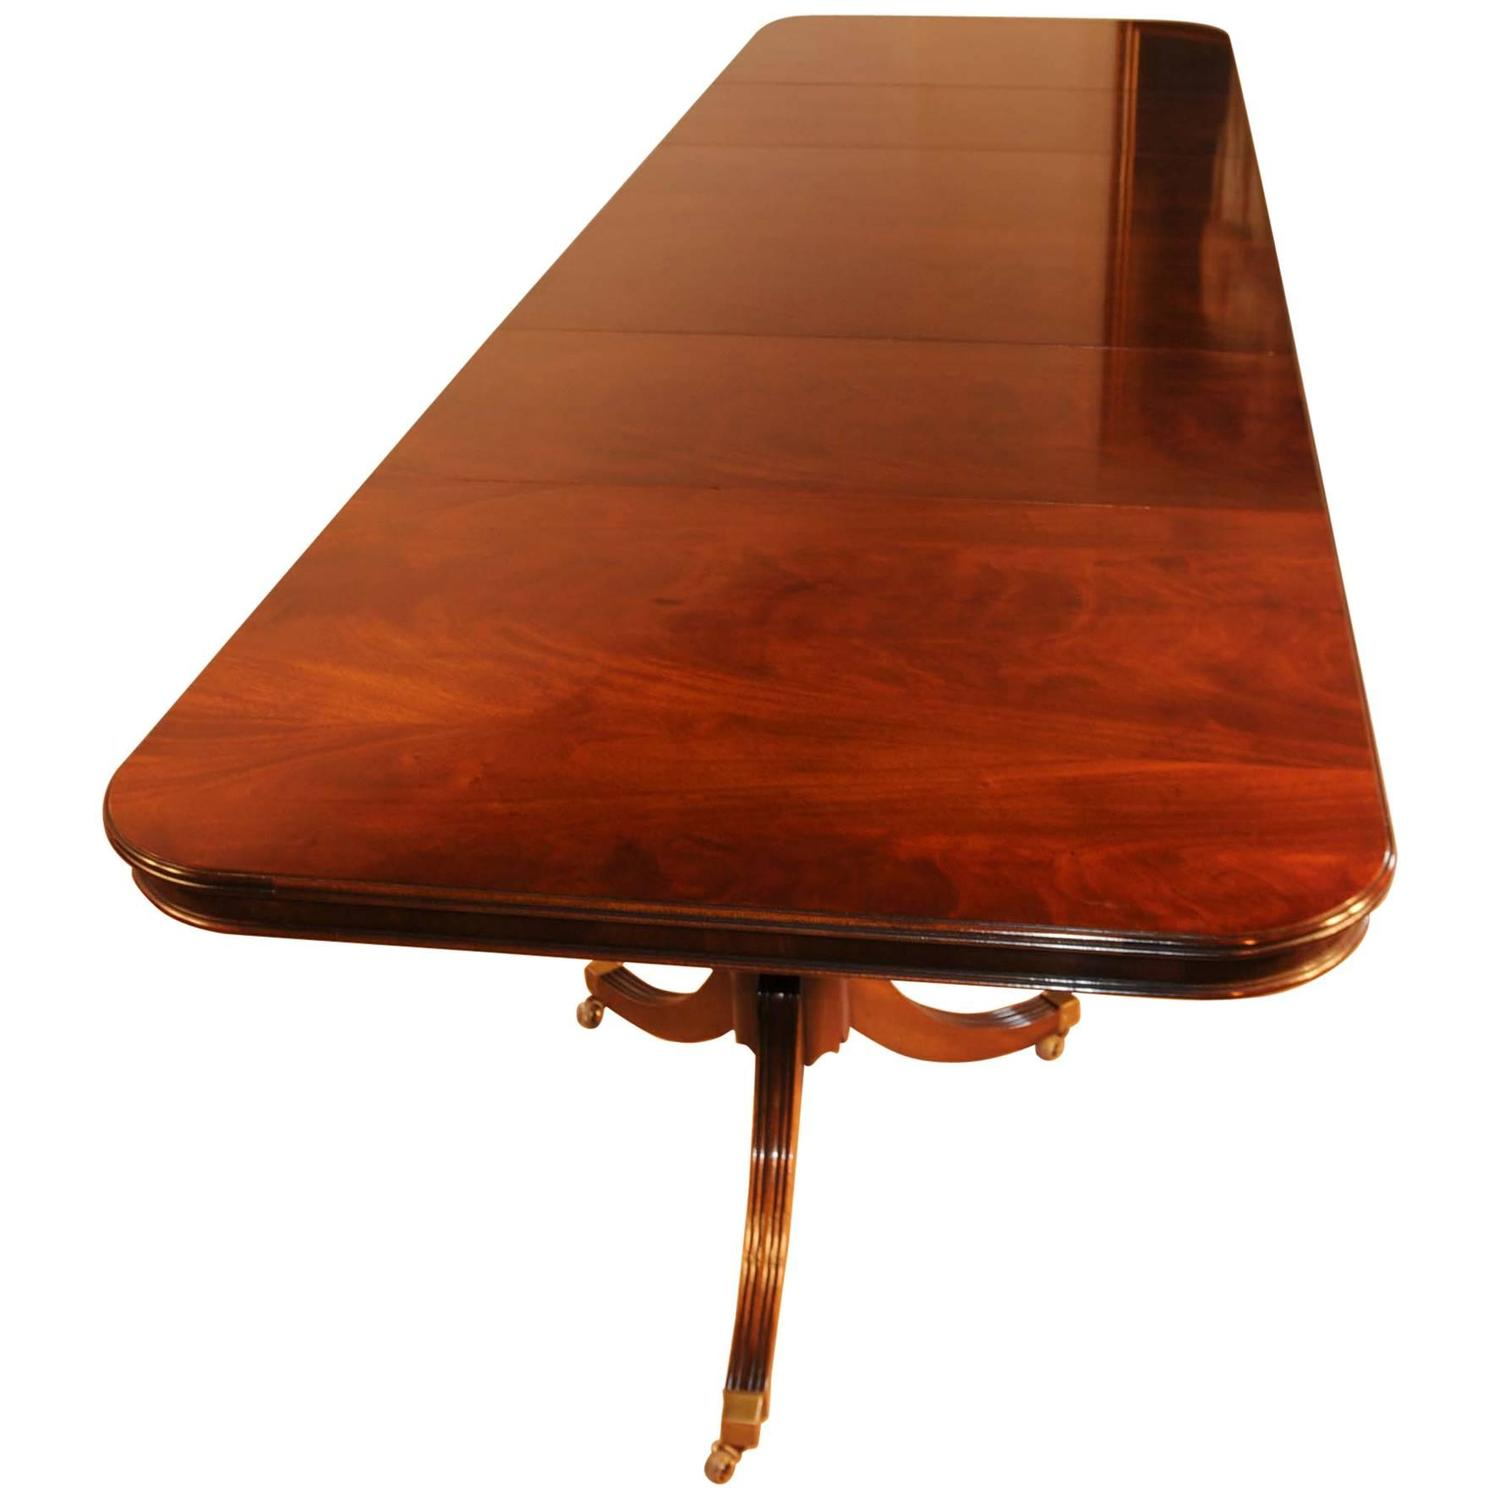 Mahogany regency pedestal dining table diner furniture for Extra long dining room tables sale